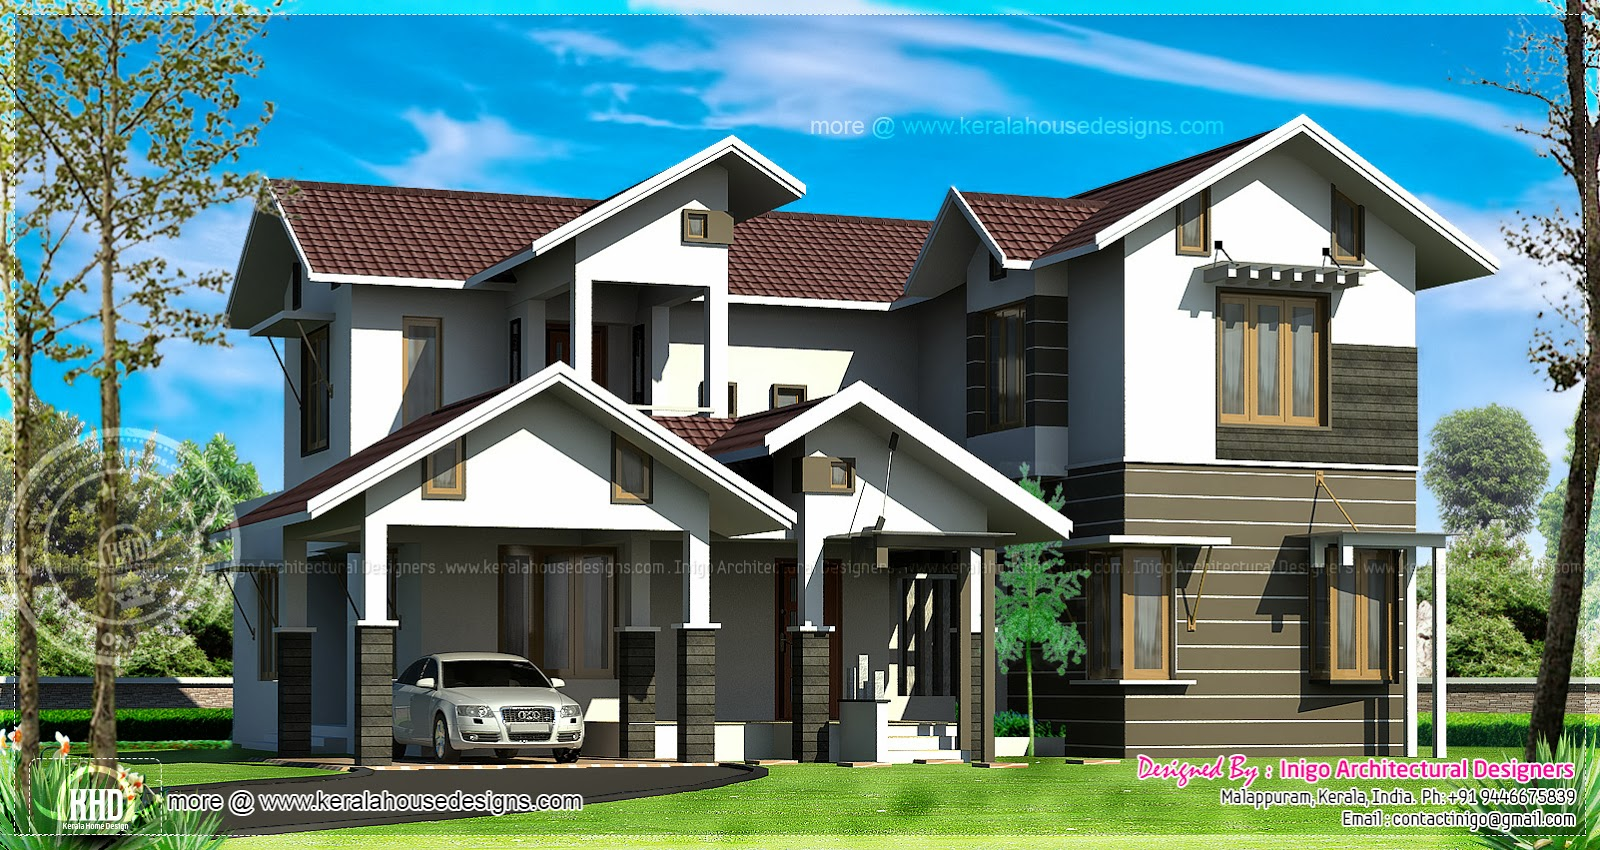 sq meter bedroom villa home kerala plans